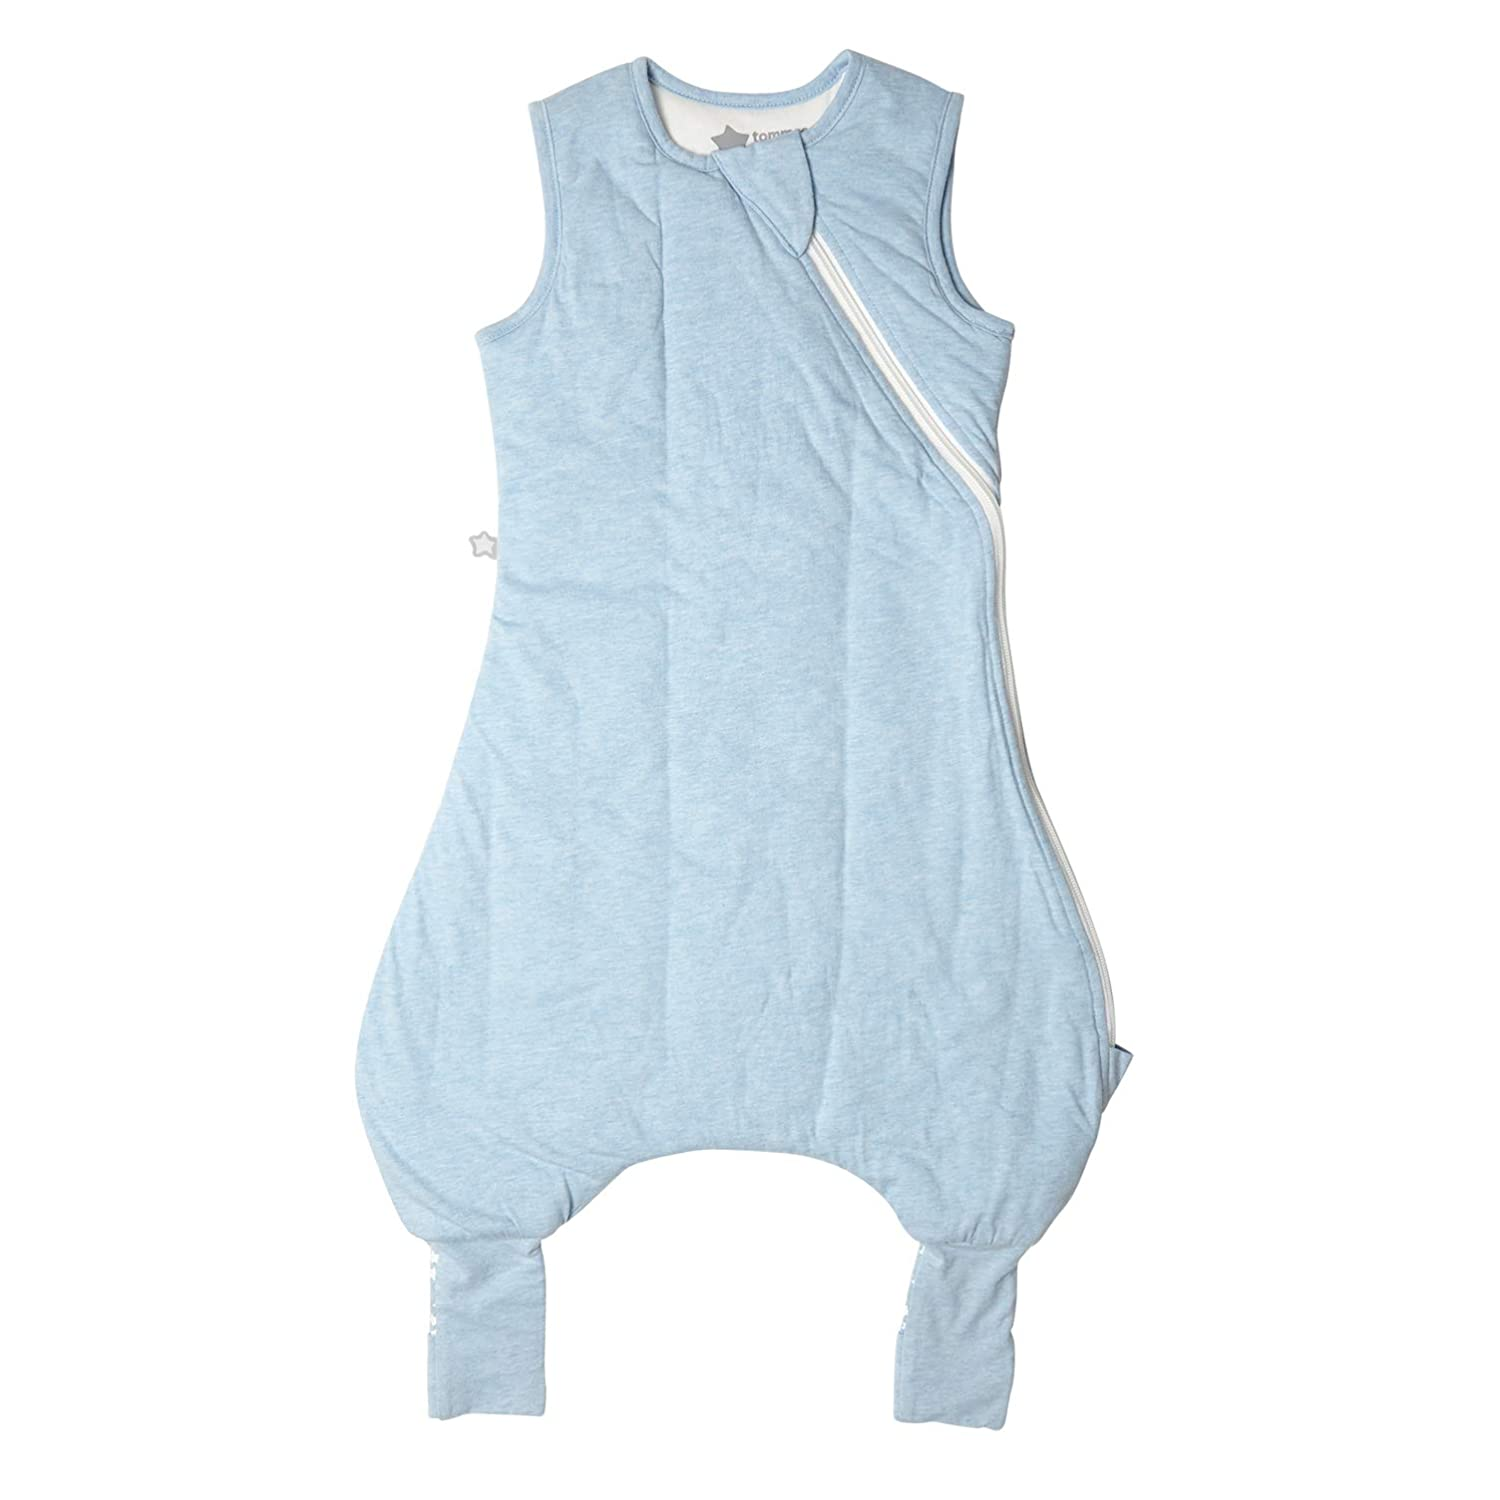 Tommee Tippee Easy Swaddle